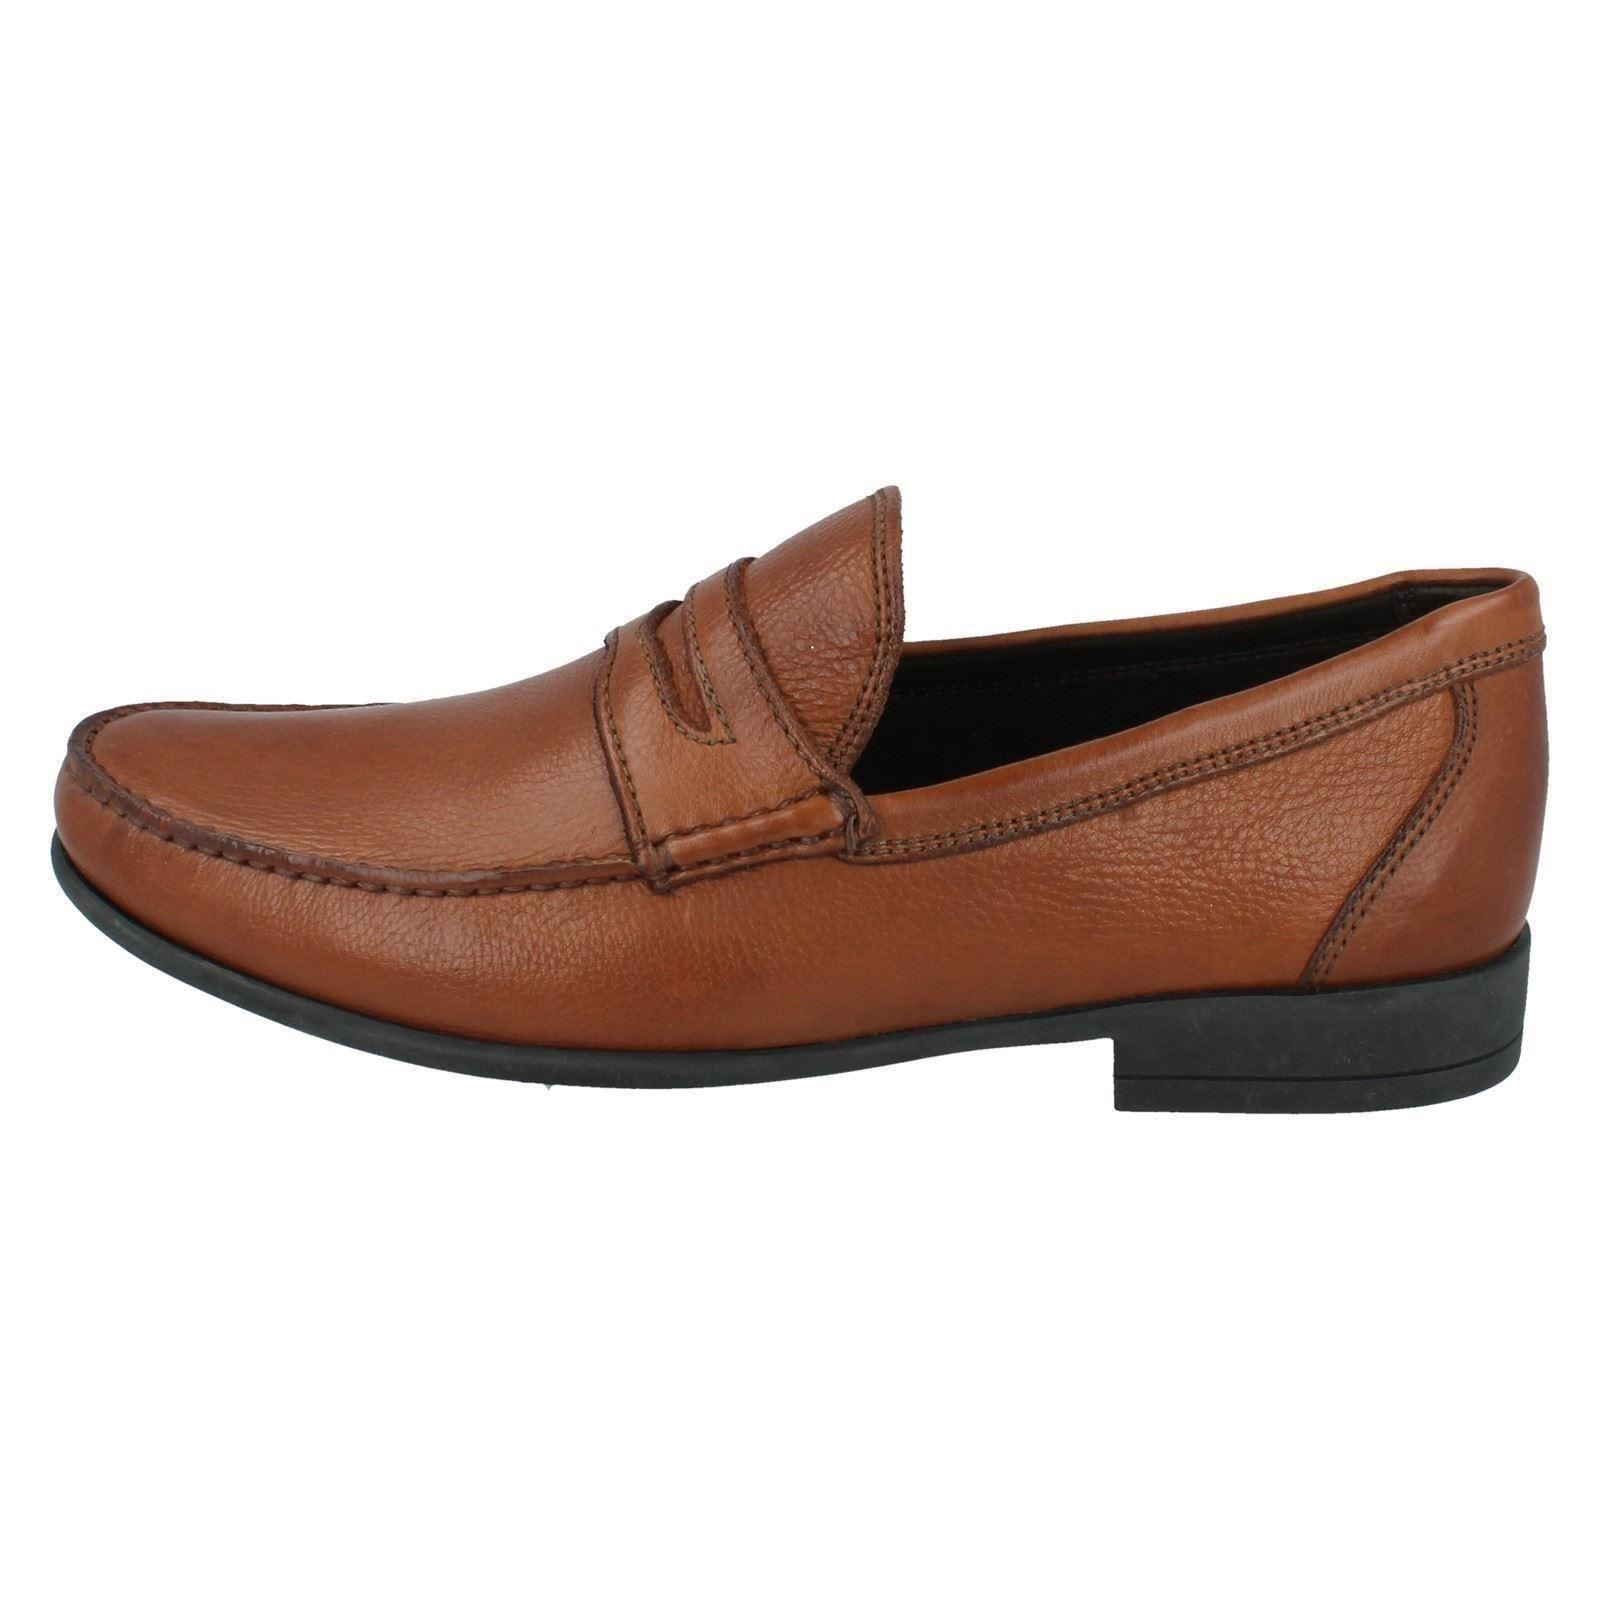 Herren Co Anatomic & Co Herren Moccasins the Style - Castelo 8a01dc